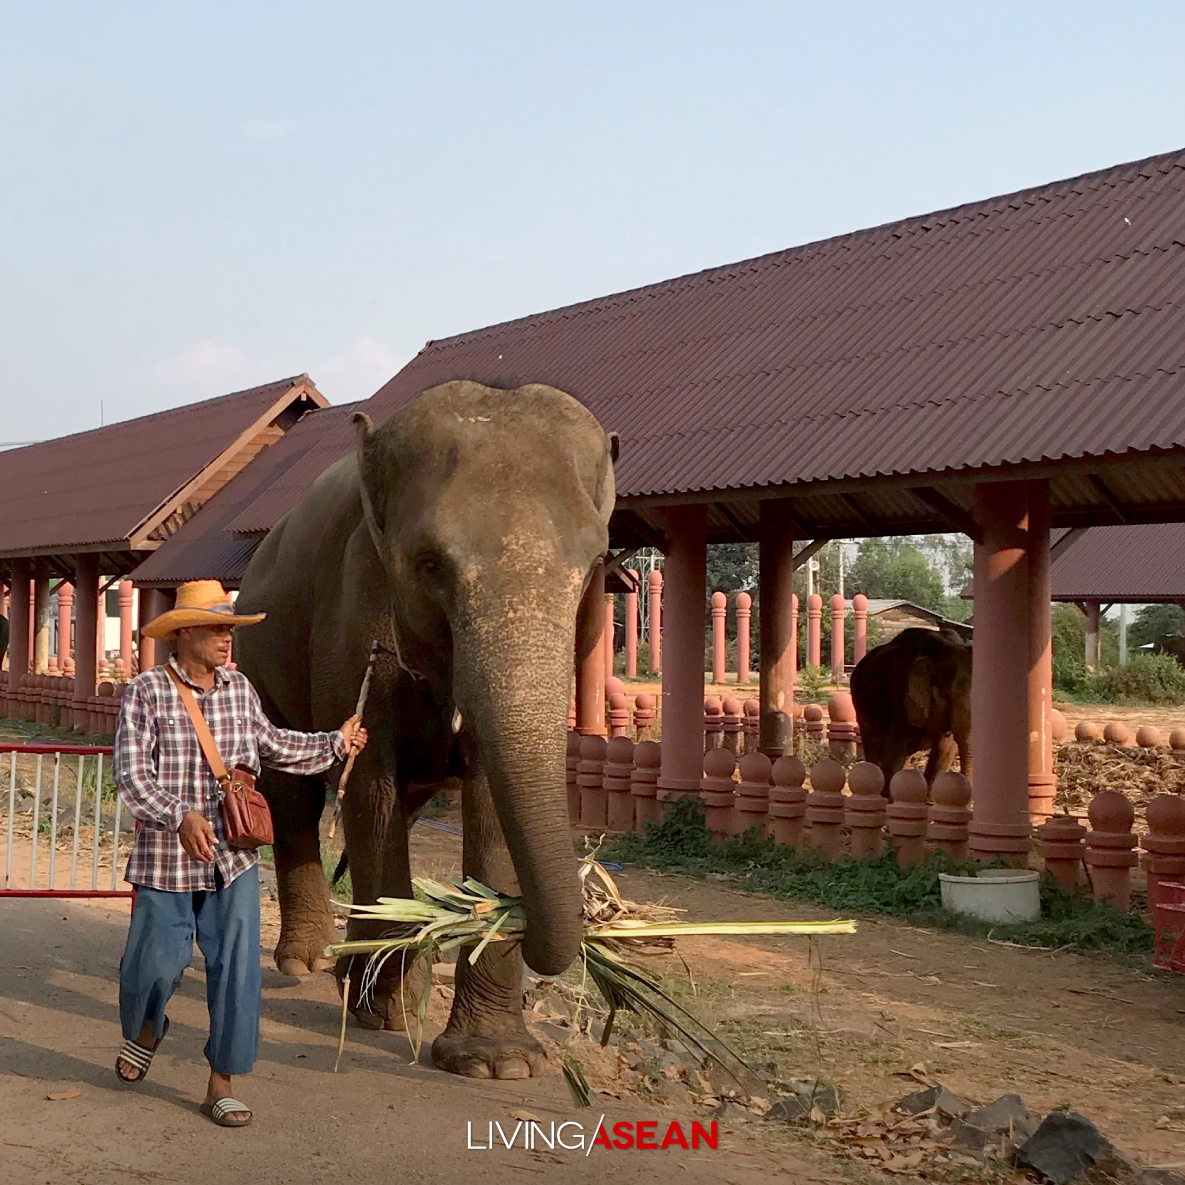 The Elephant World of Surin